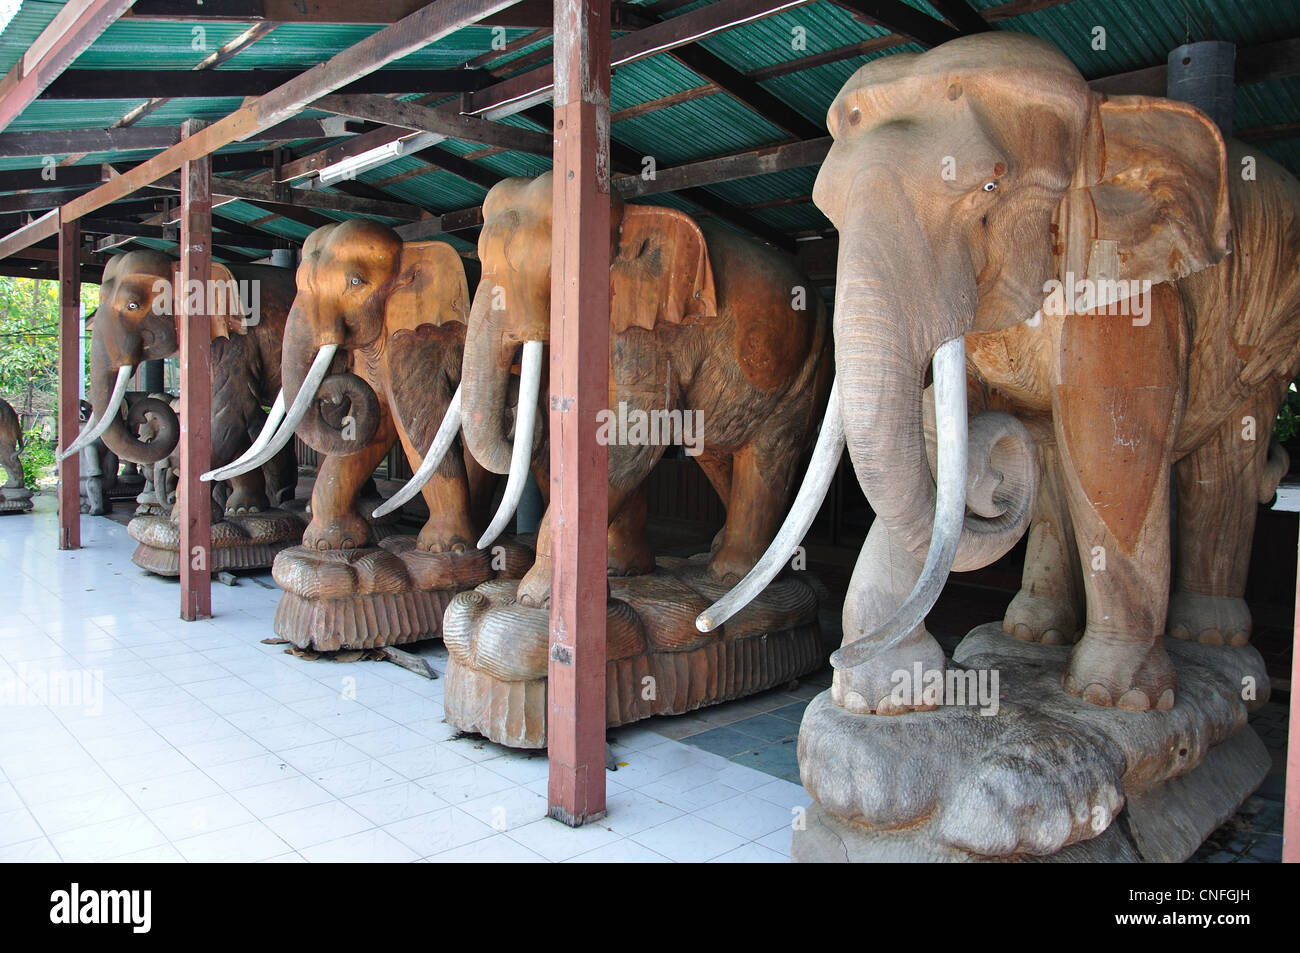 Giant Wood Carved Elephants At The Royal Thai Wood Carving